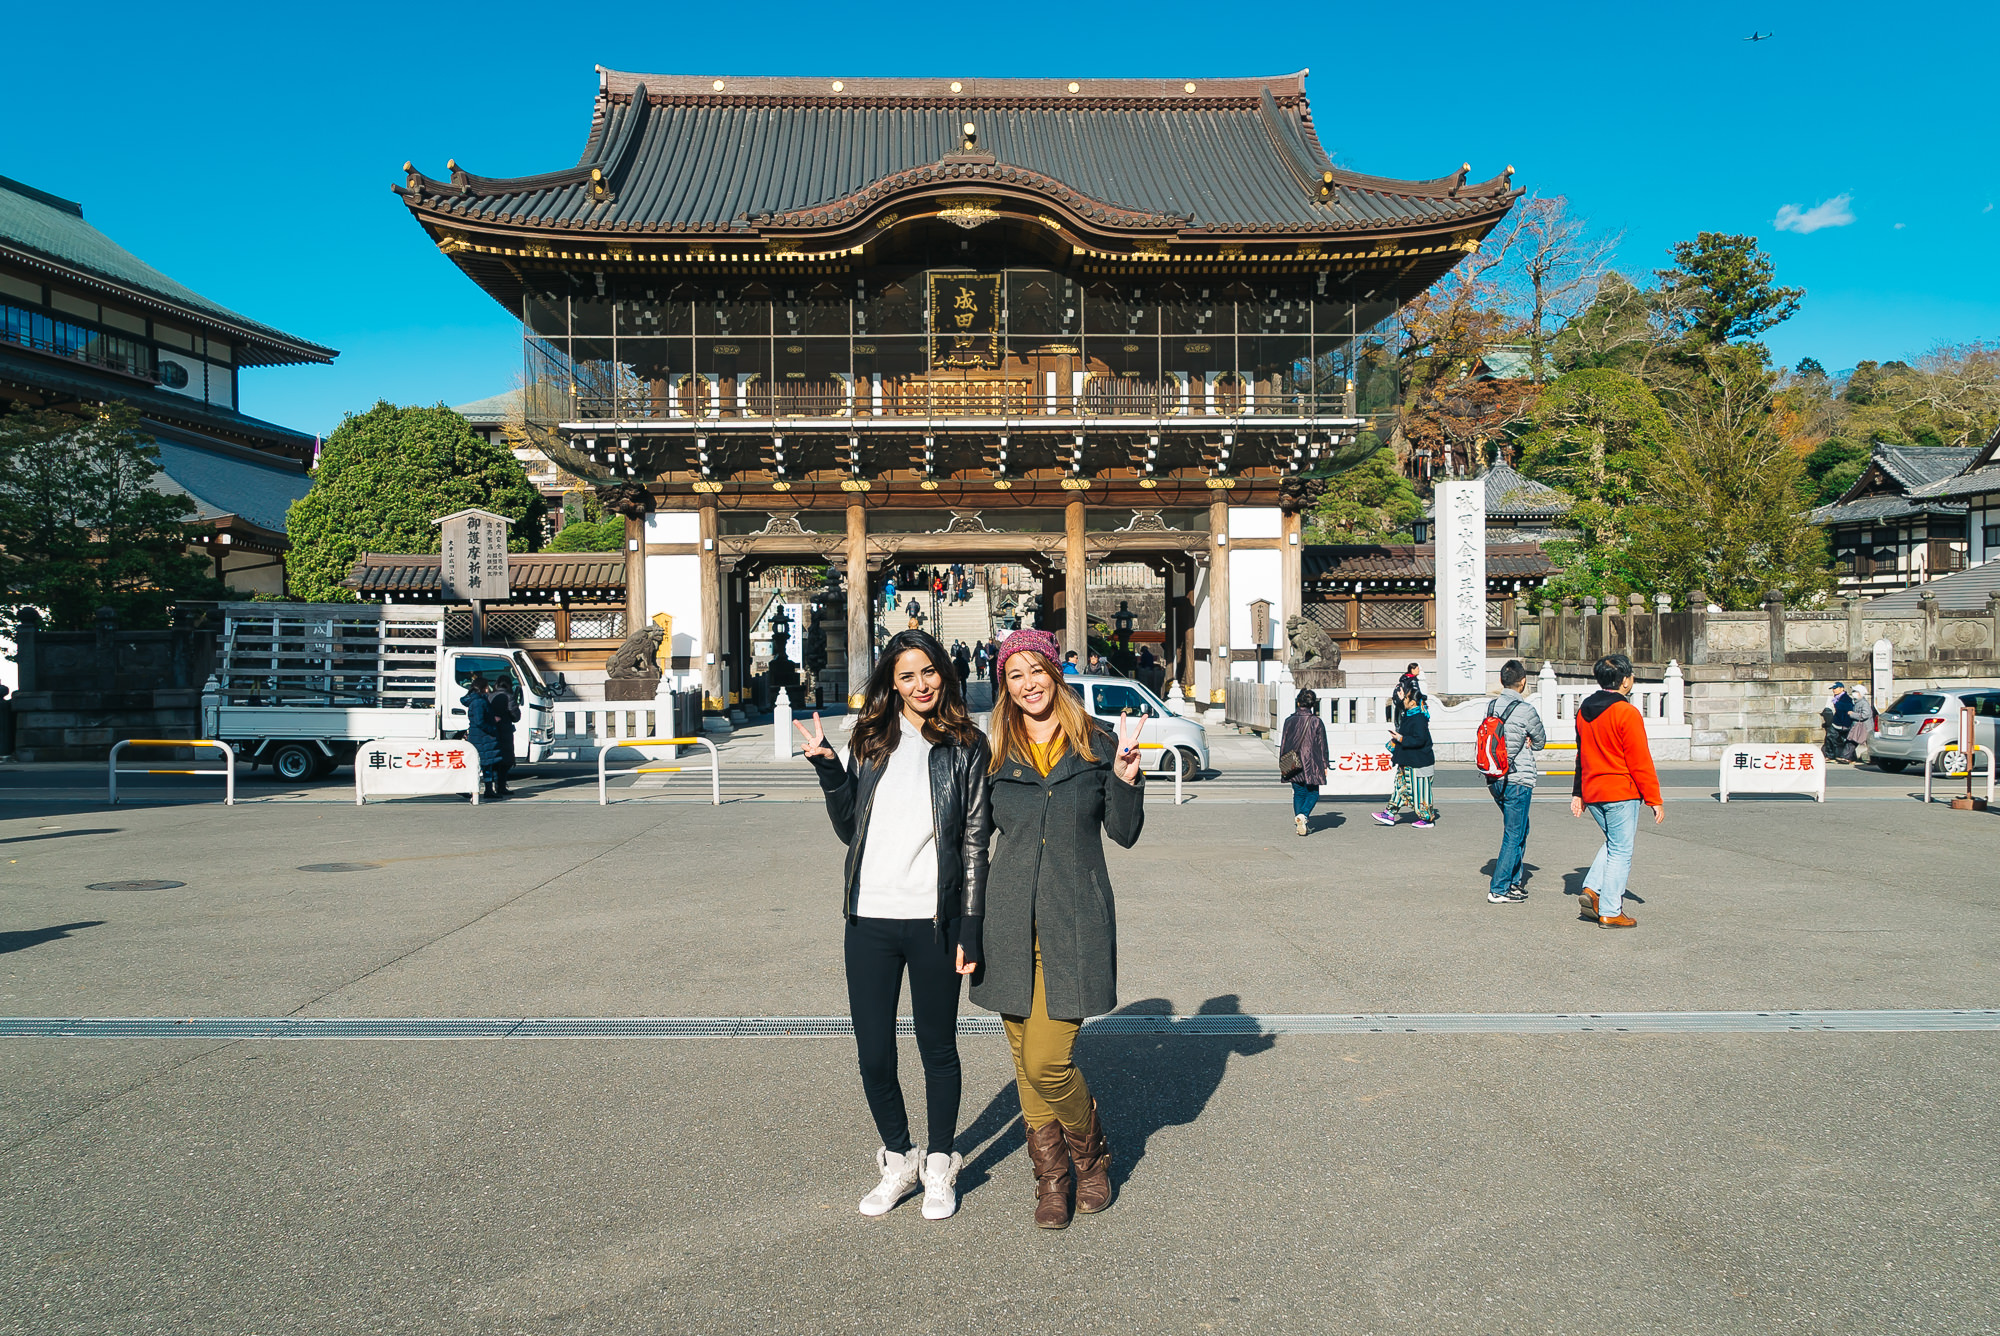 IN FRONT OF THE NARITASAN ENTRANCE